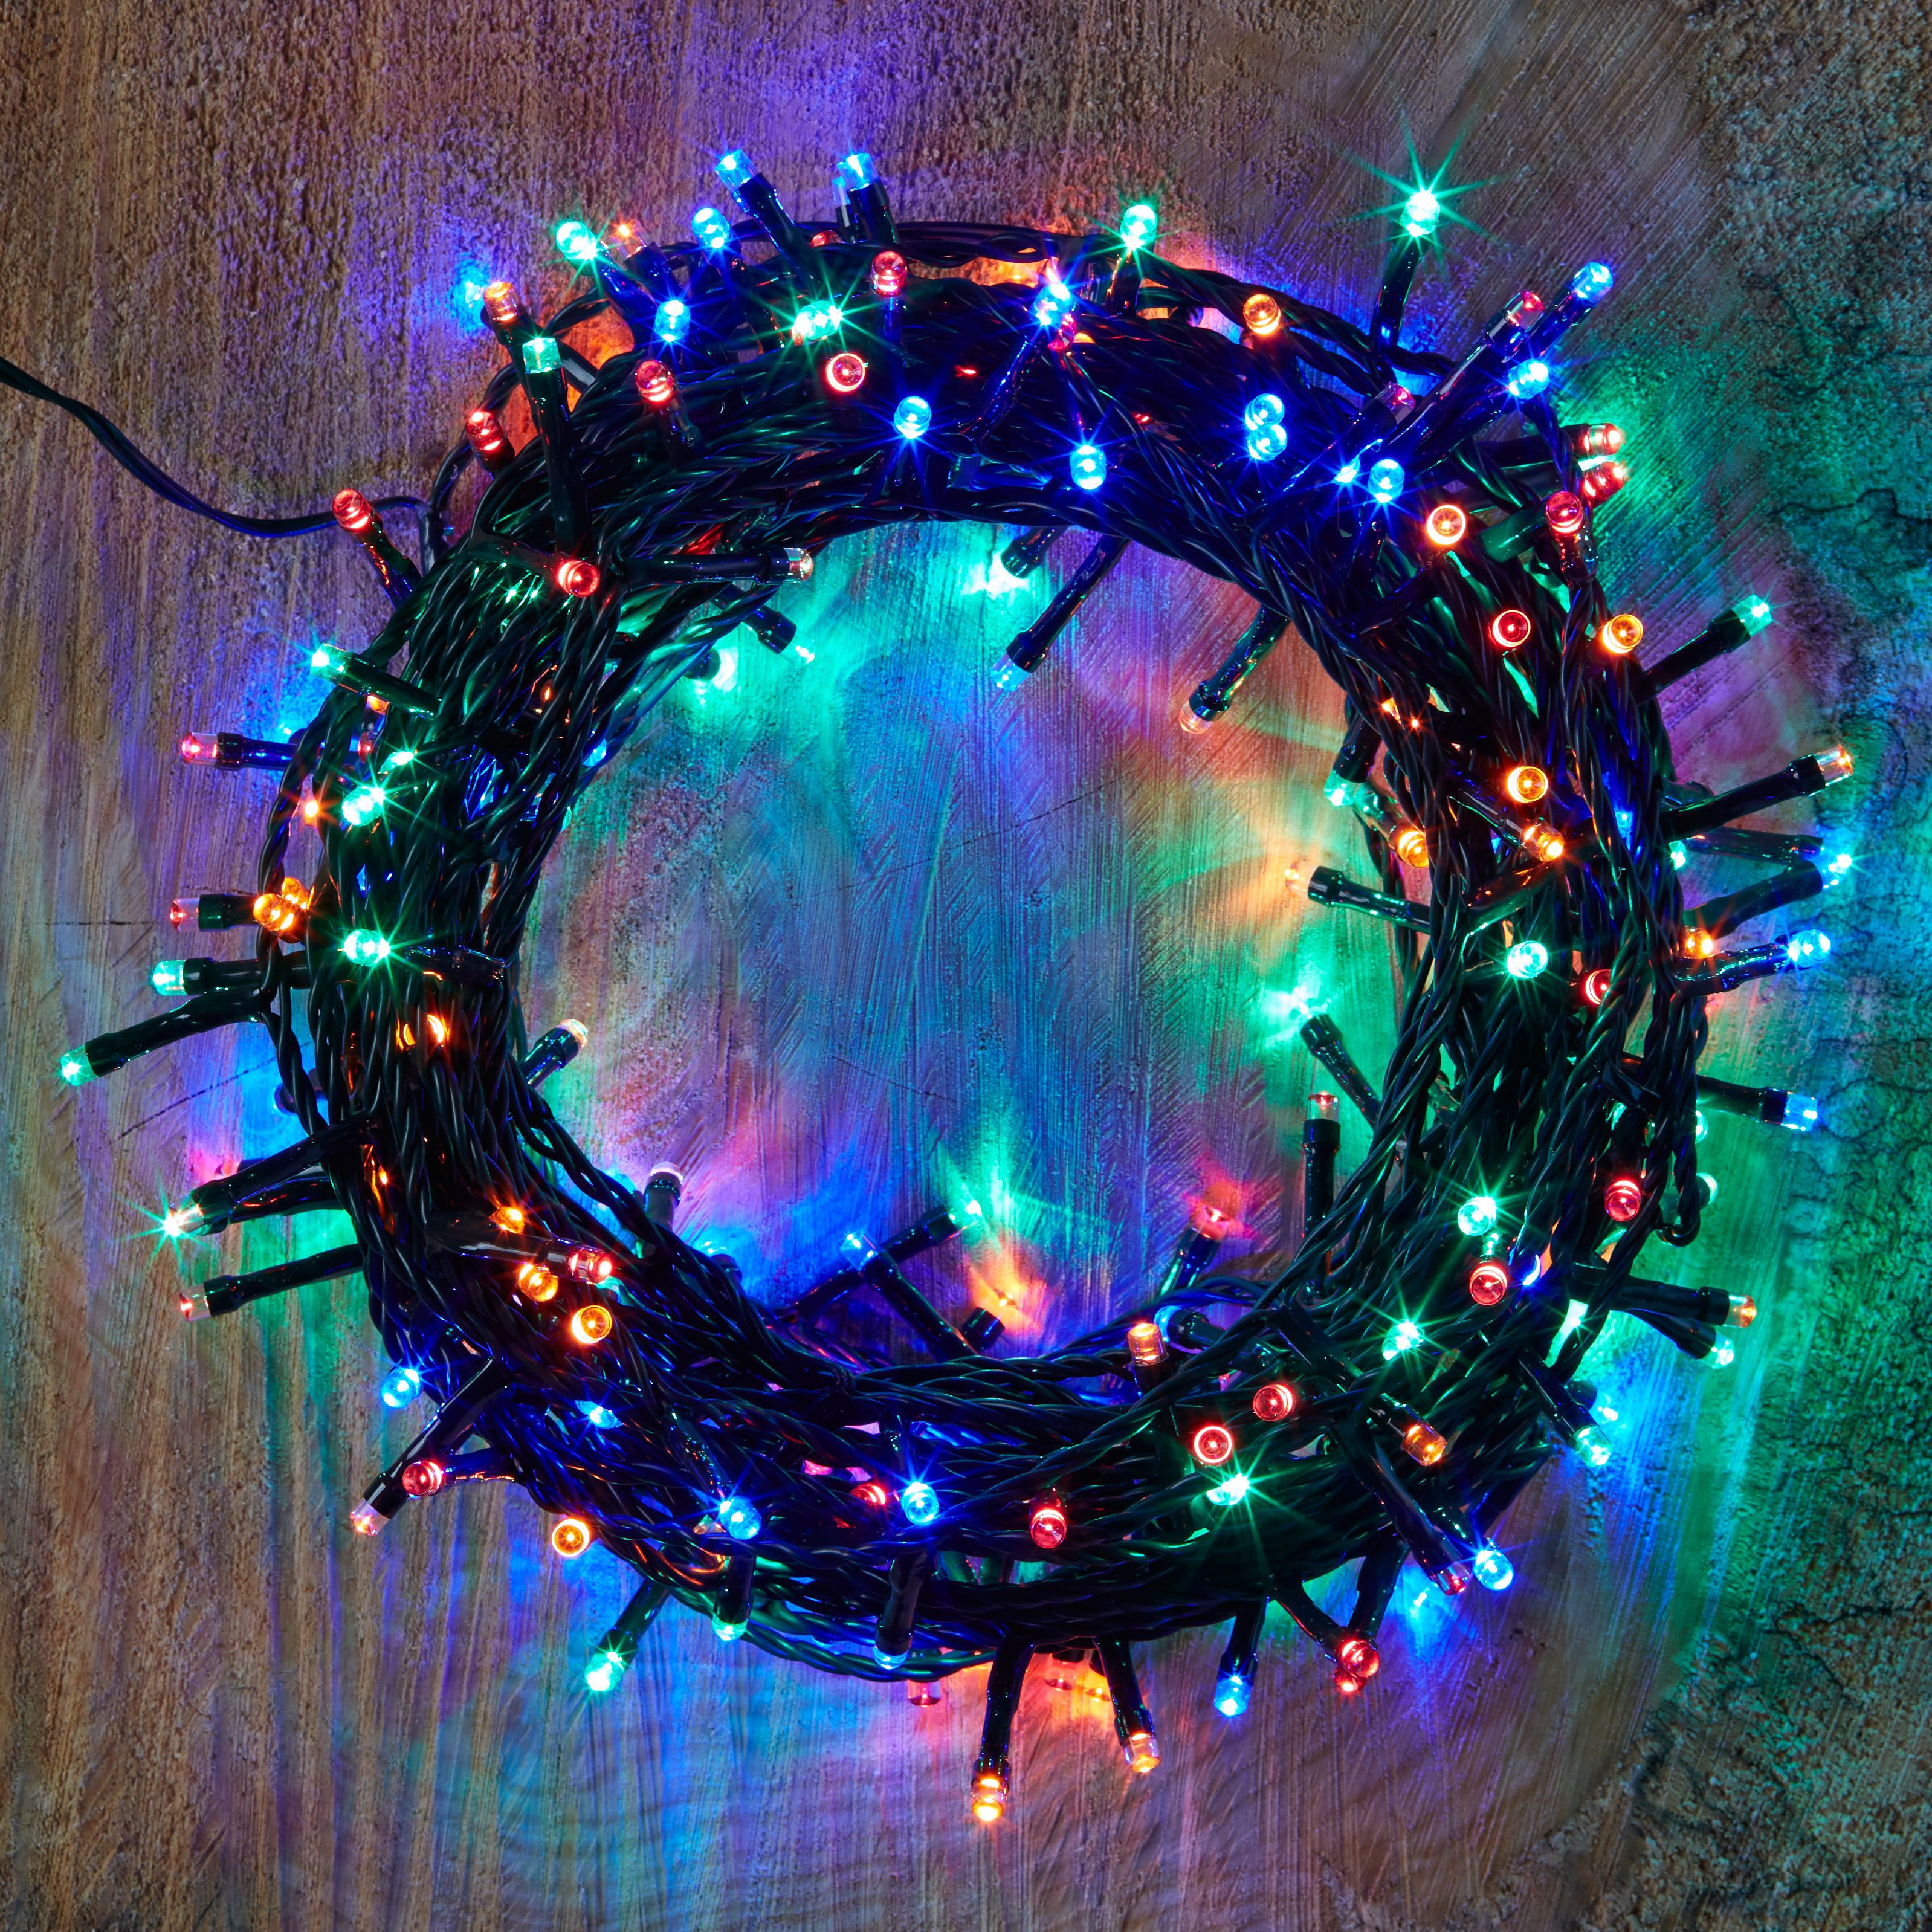 Led String Lights Diy : 240 Multicolour LED String Lights Departments DIY at B&Q